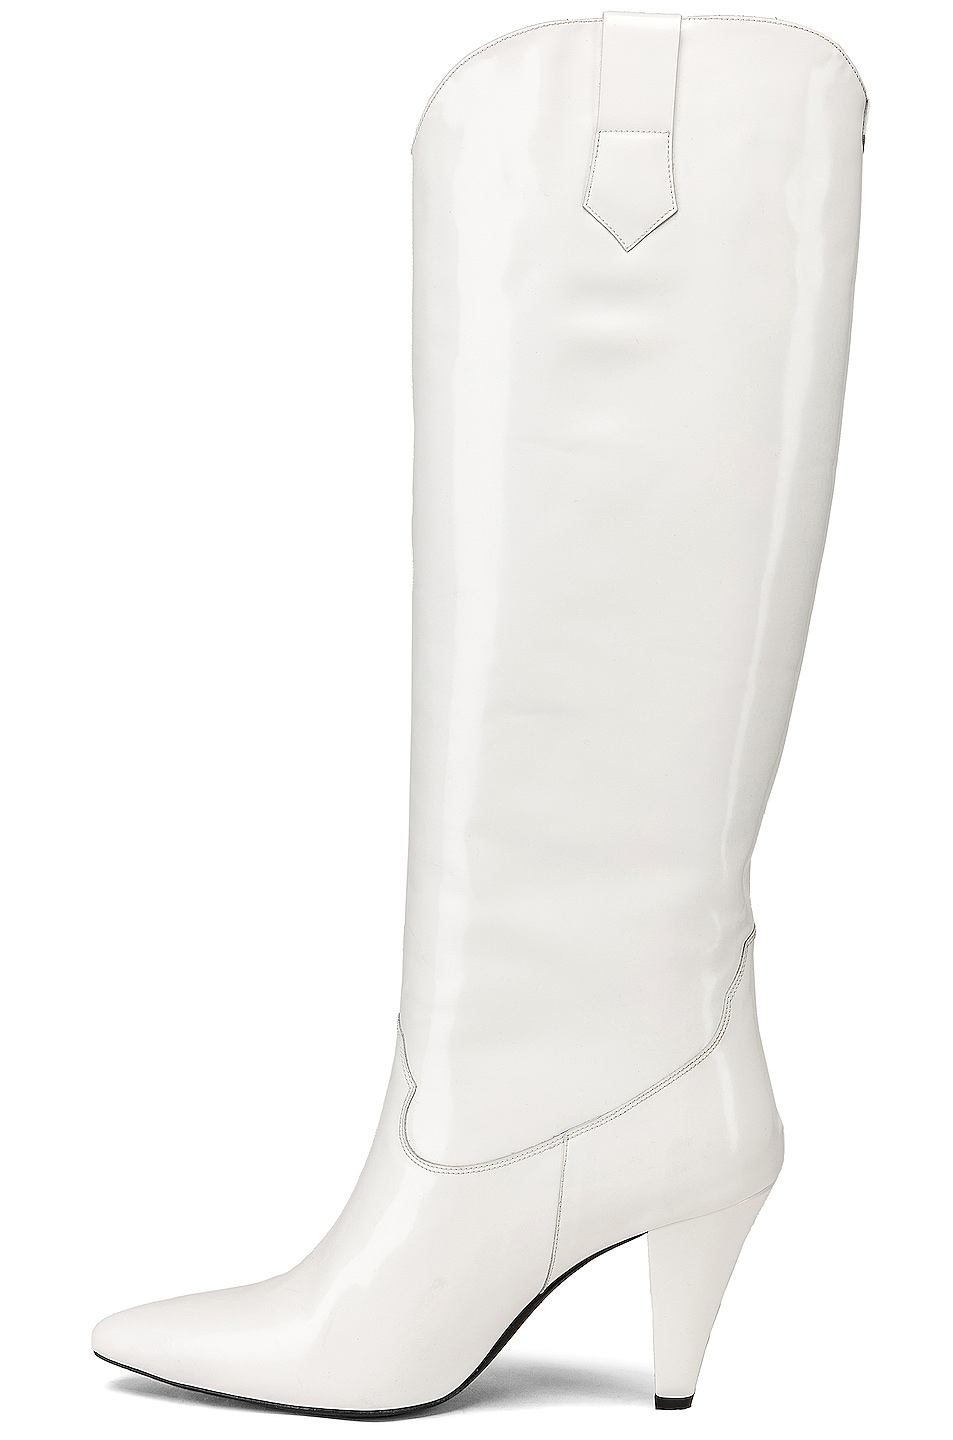 Image 5 of Zeynep Arcay Patent Leather Knee High Boots in White